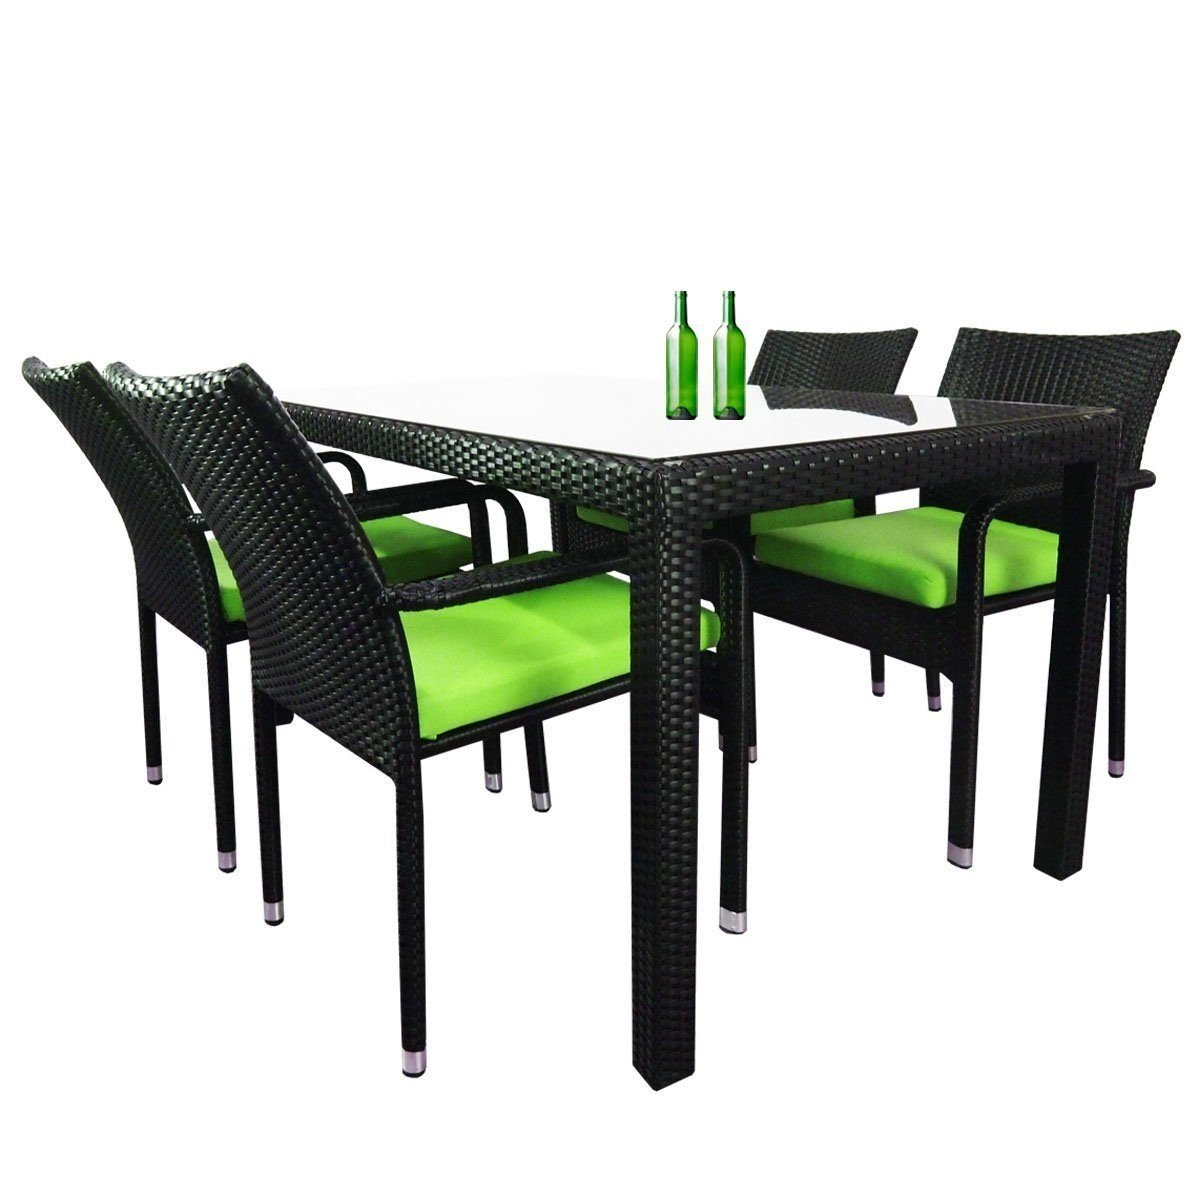 Boulevard 4 Chair Dining Set, Green Cushions